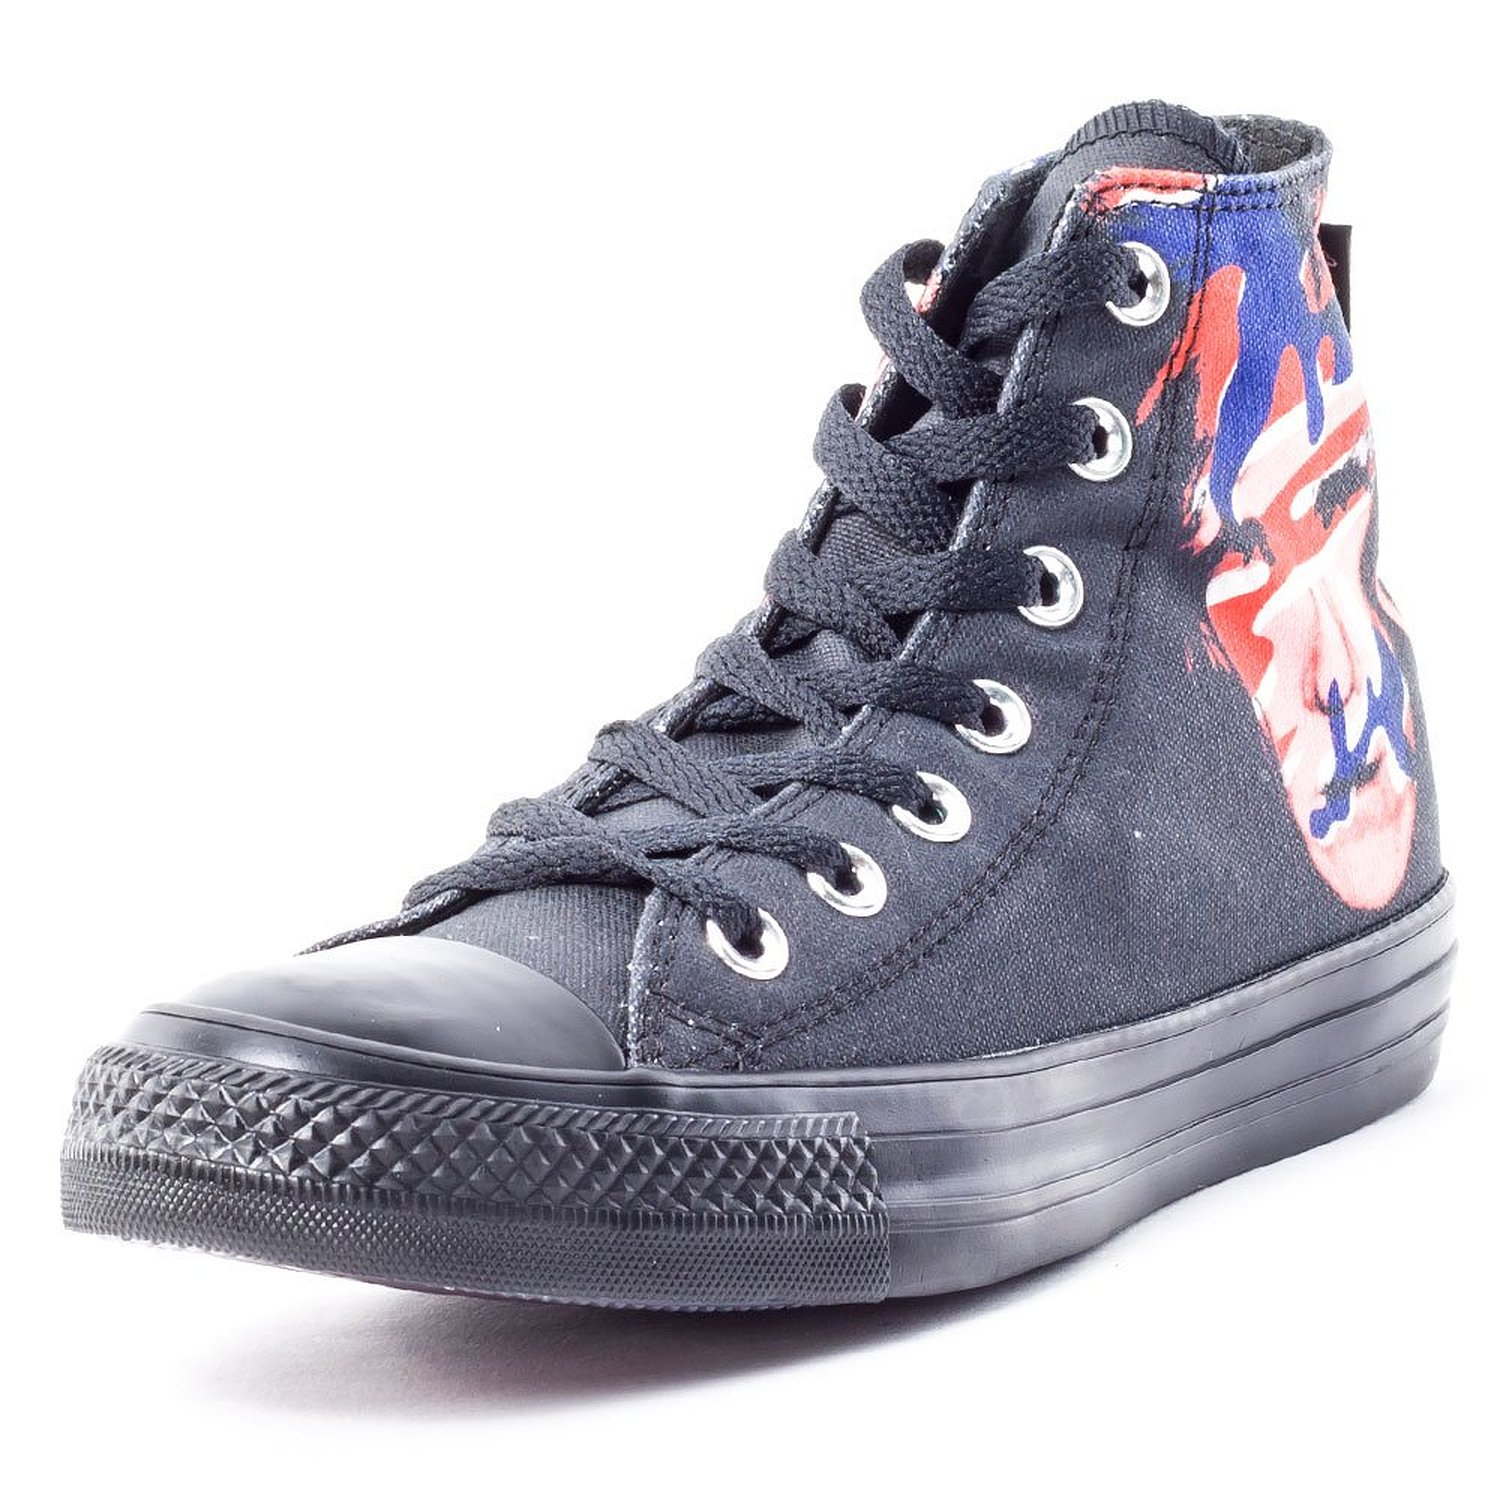 3d4c7ae3fcee Get Quotations · Converse Men s Chuck Taylor All Star Warhol